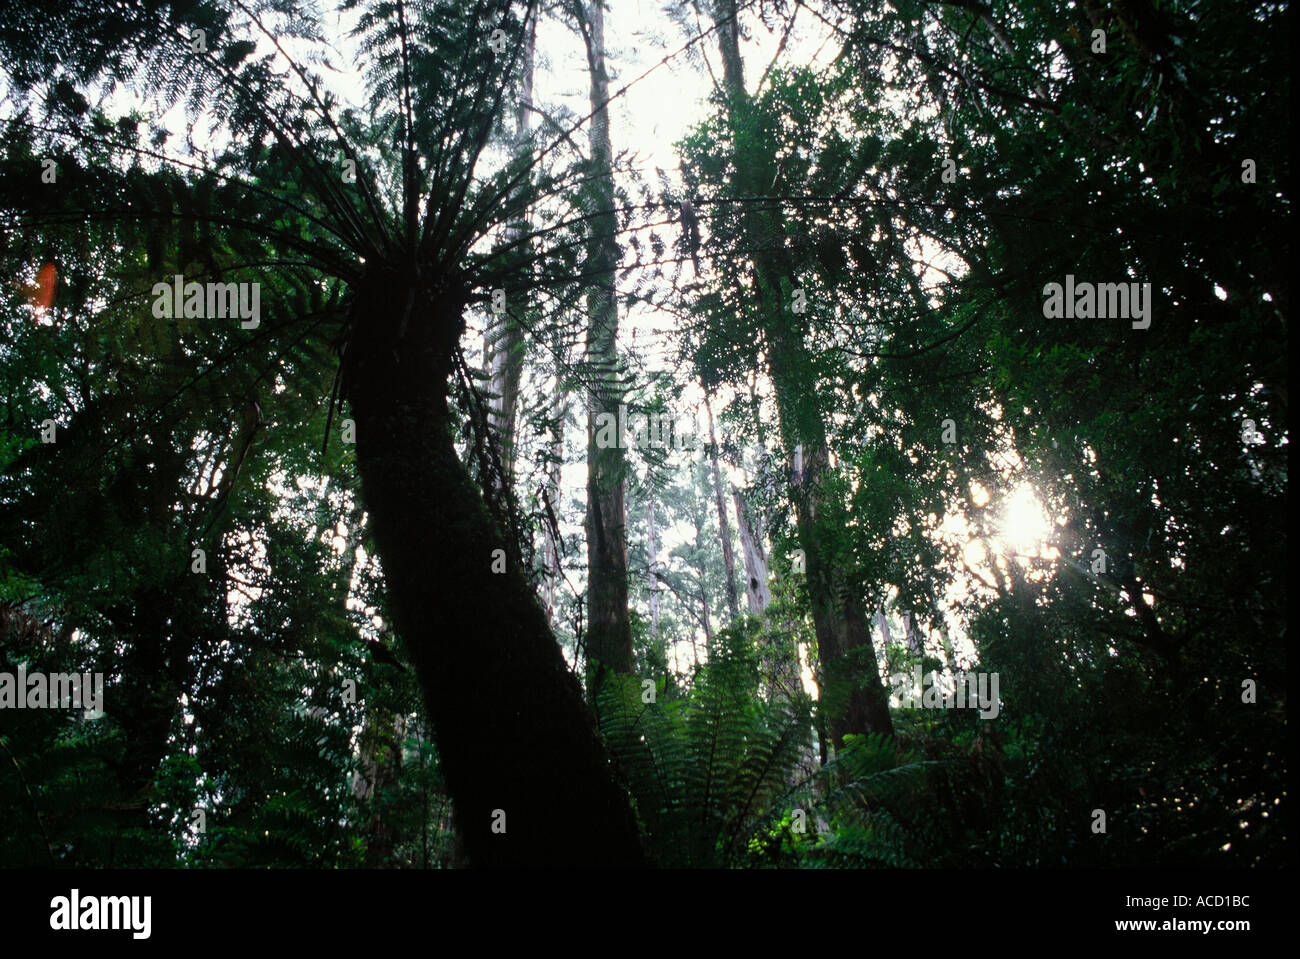 Fern tree in mountain ash forest - Stock Image